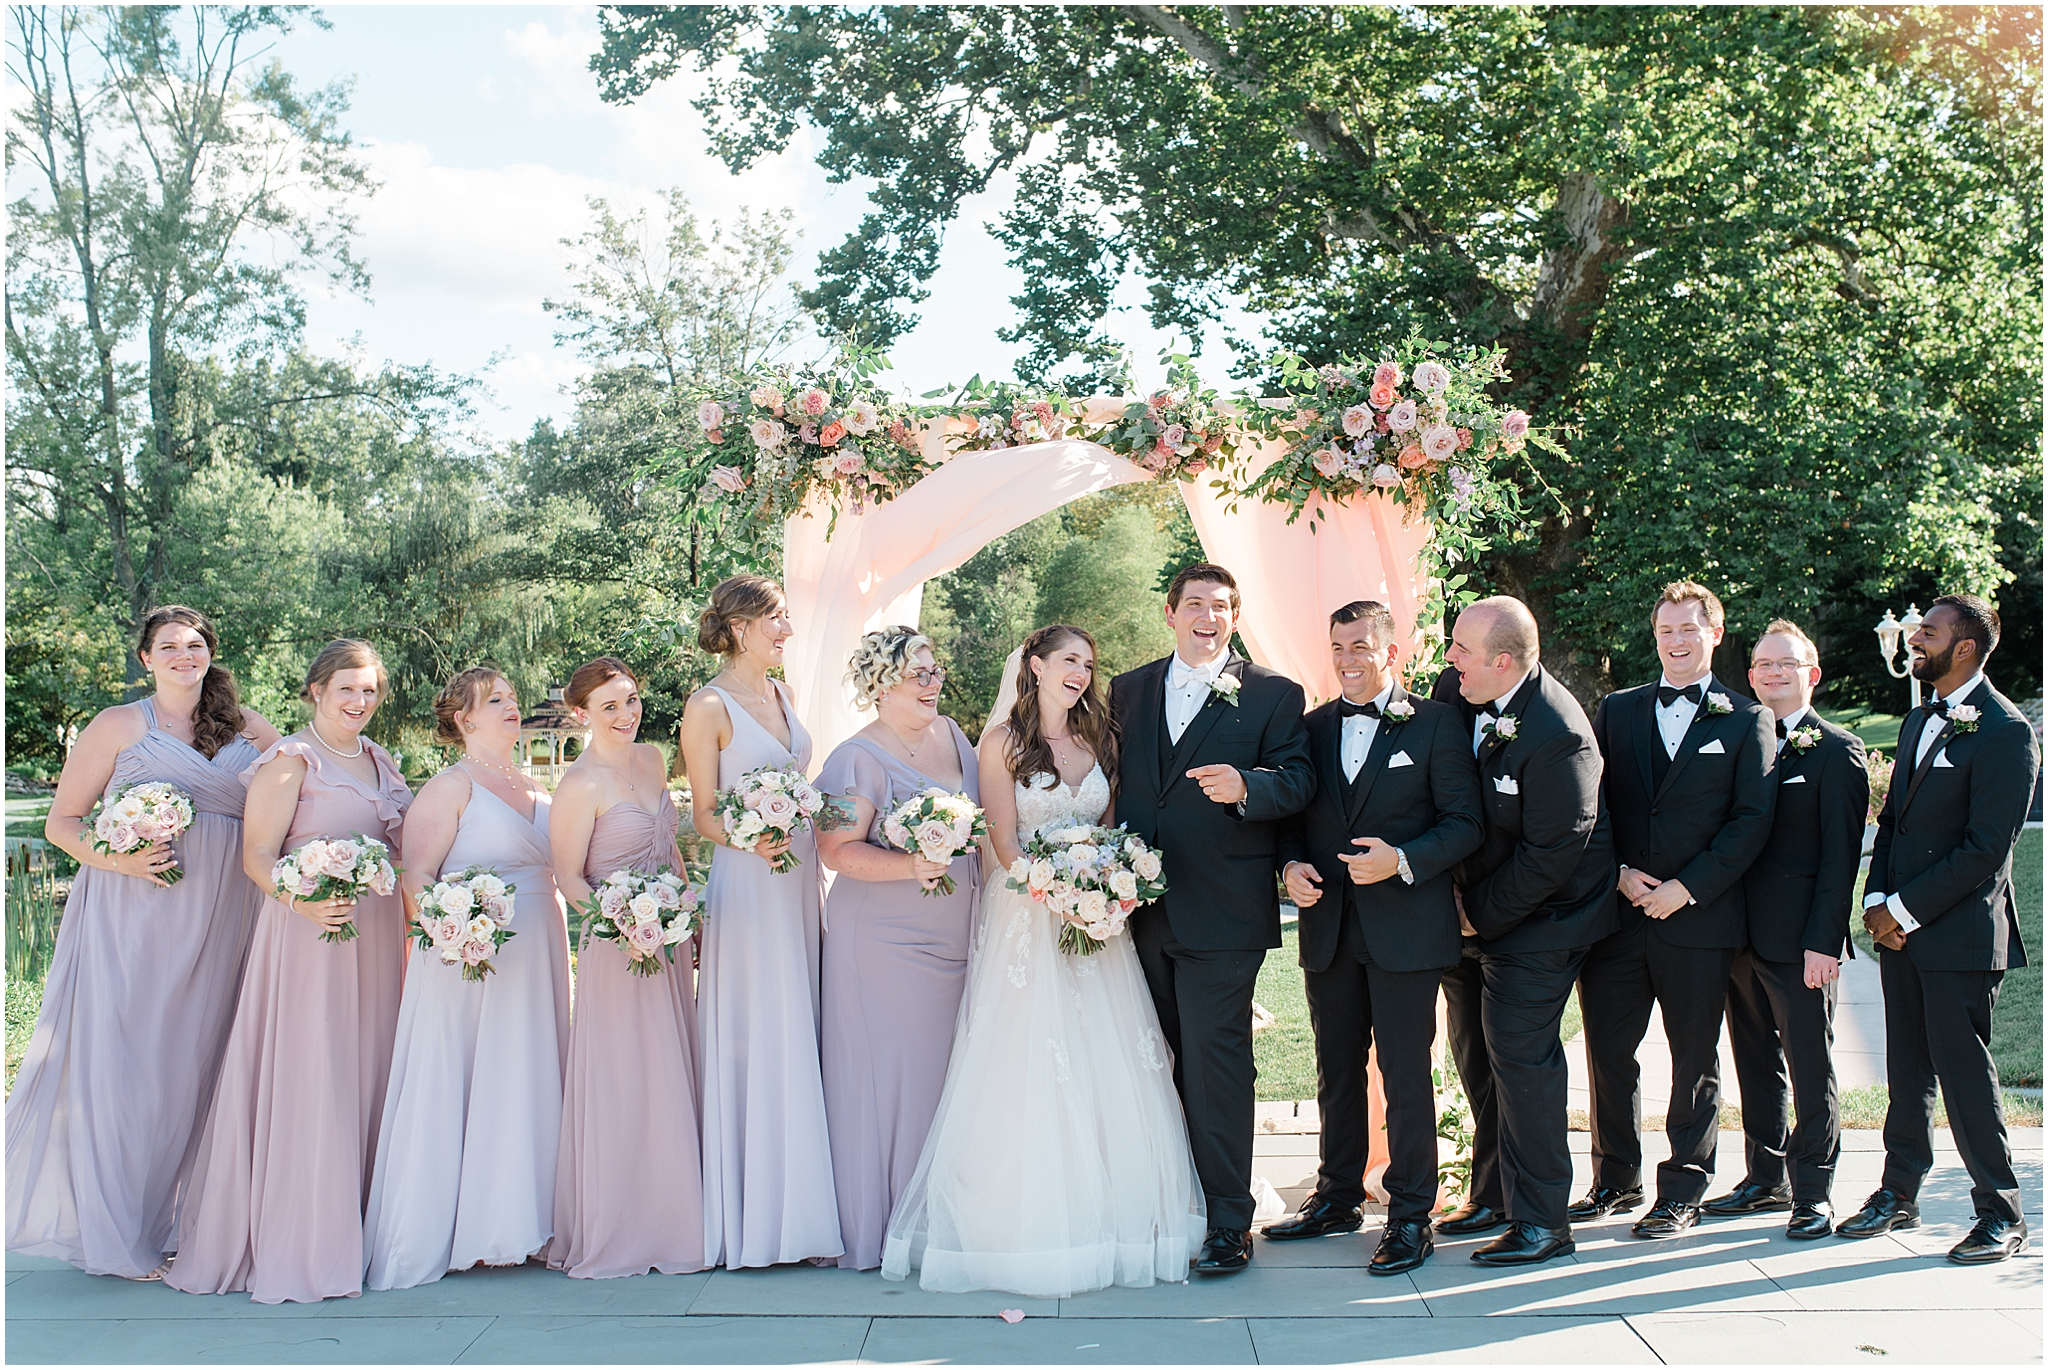 The Manor House at Prophecy Creek Wedding in Philadelphia, PA by Philadelphia Wedding Photographer Olivia Rae Photography